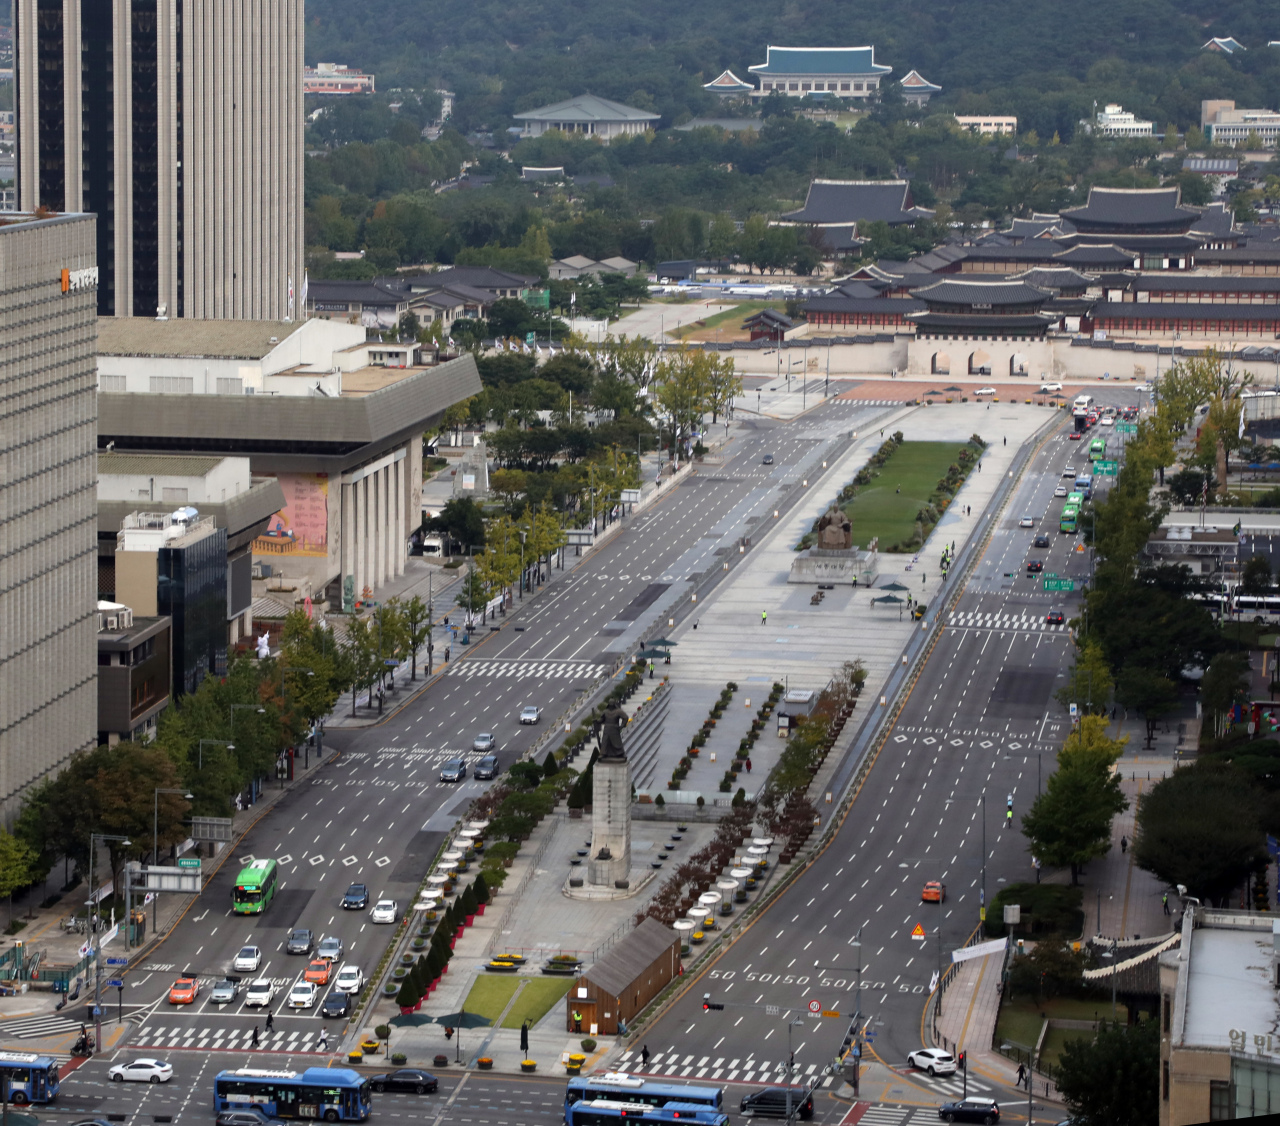 The Gwanghwamun Square is void of visitors Saturday as a large number of police officers and vehicles were mobilized to block protesters from gathering for mass rallies amid concerns over the spread of the coronavirus. (Yonhap)